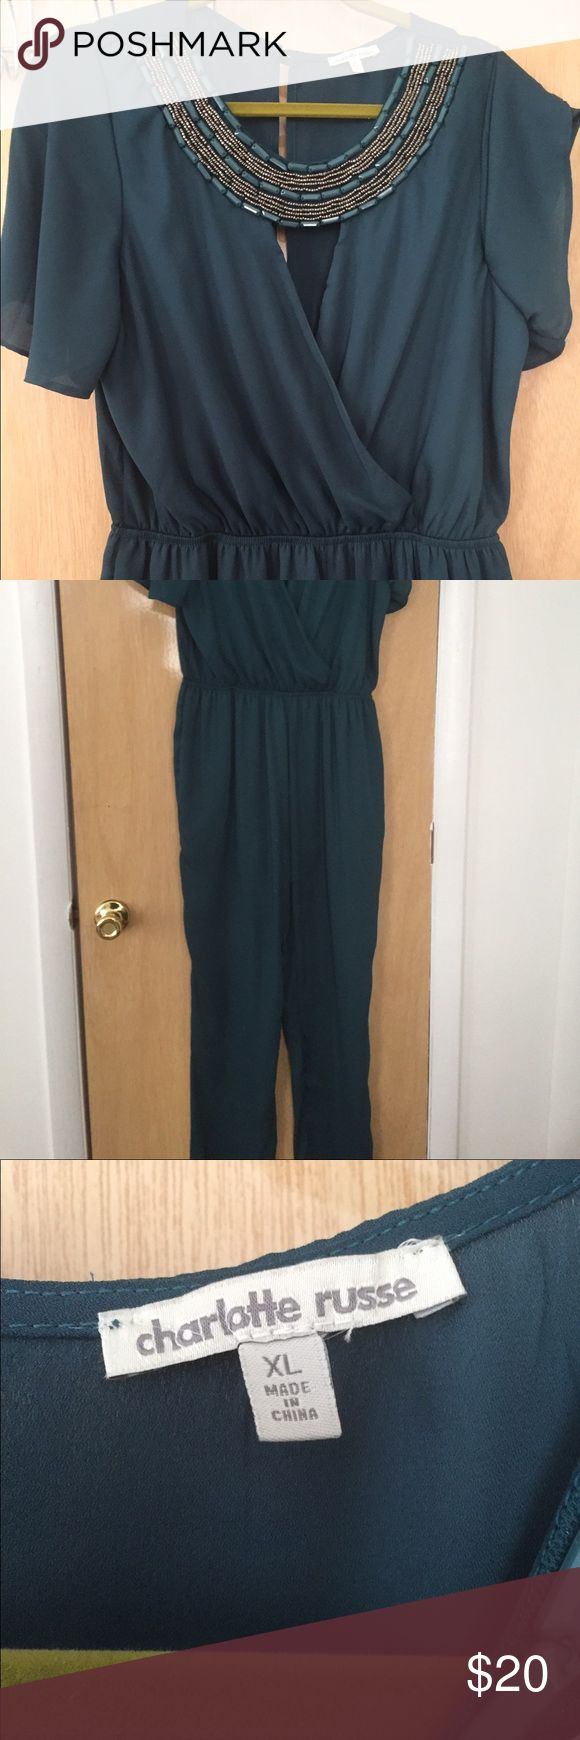 """Teal Jumpsuit Teal full length jumpsuit. XL, I'm 5'5"""" and it requires heels. Worn once! Charlotte Russe Pants Jumpsuits & Rompers"""